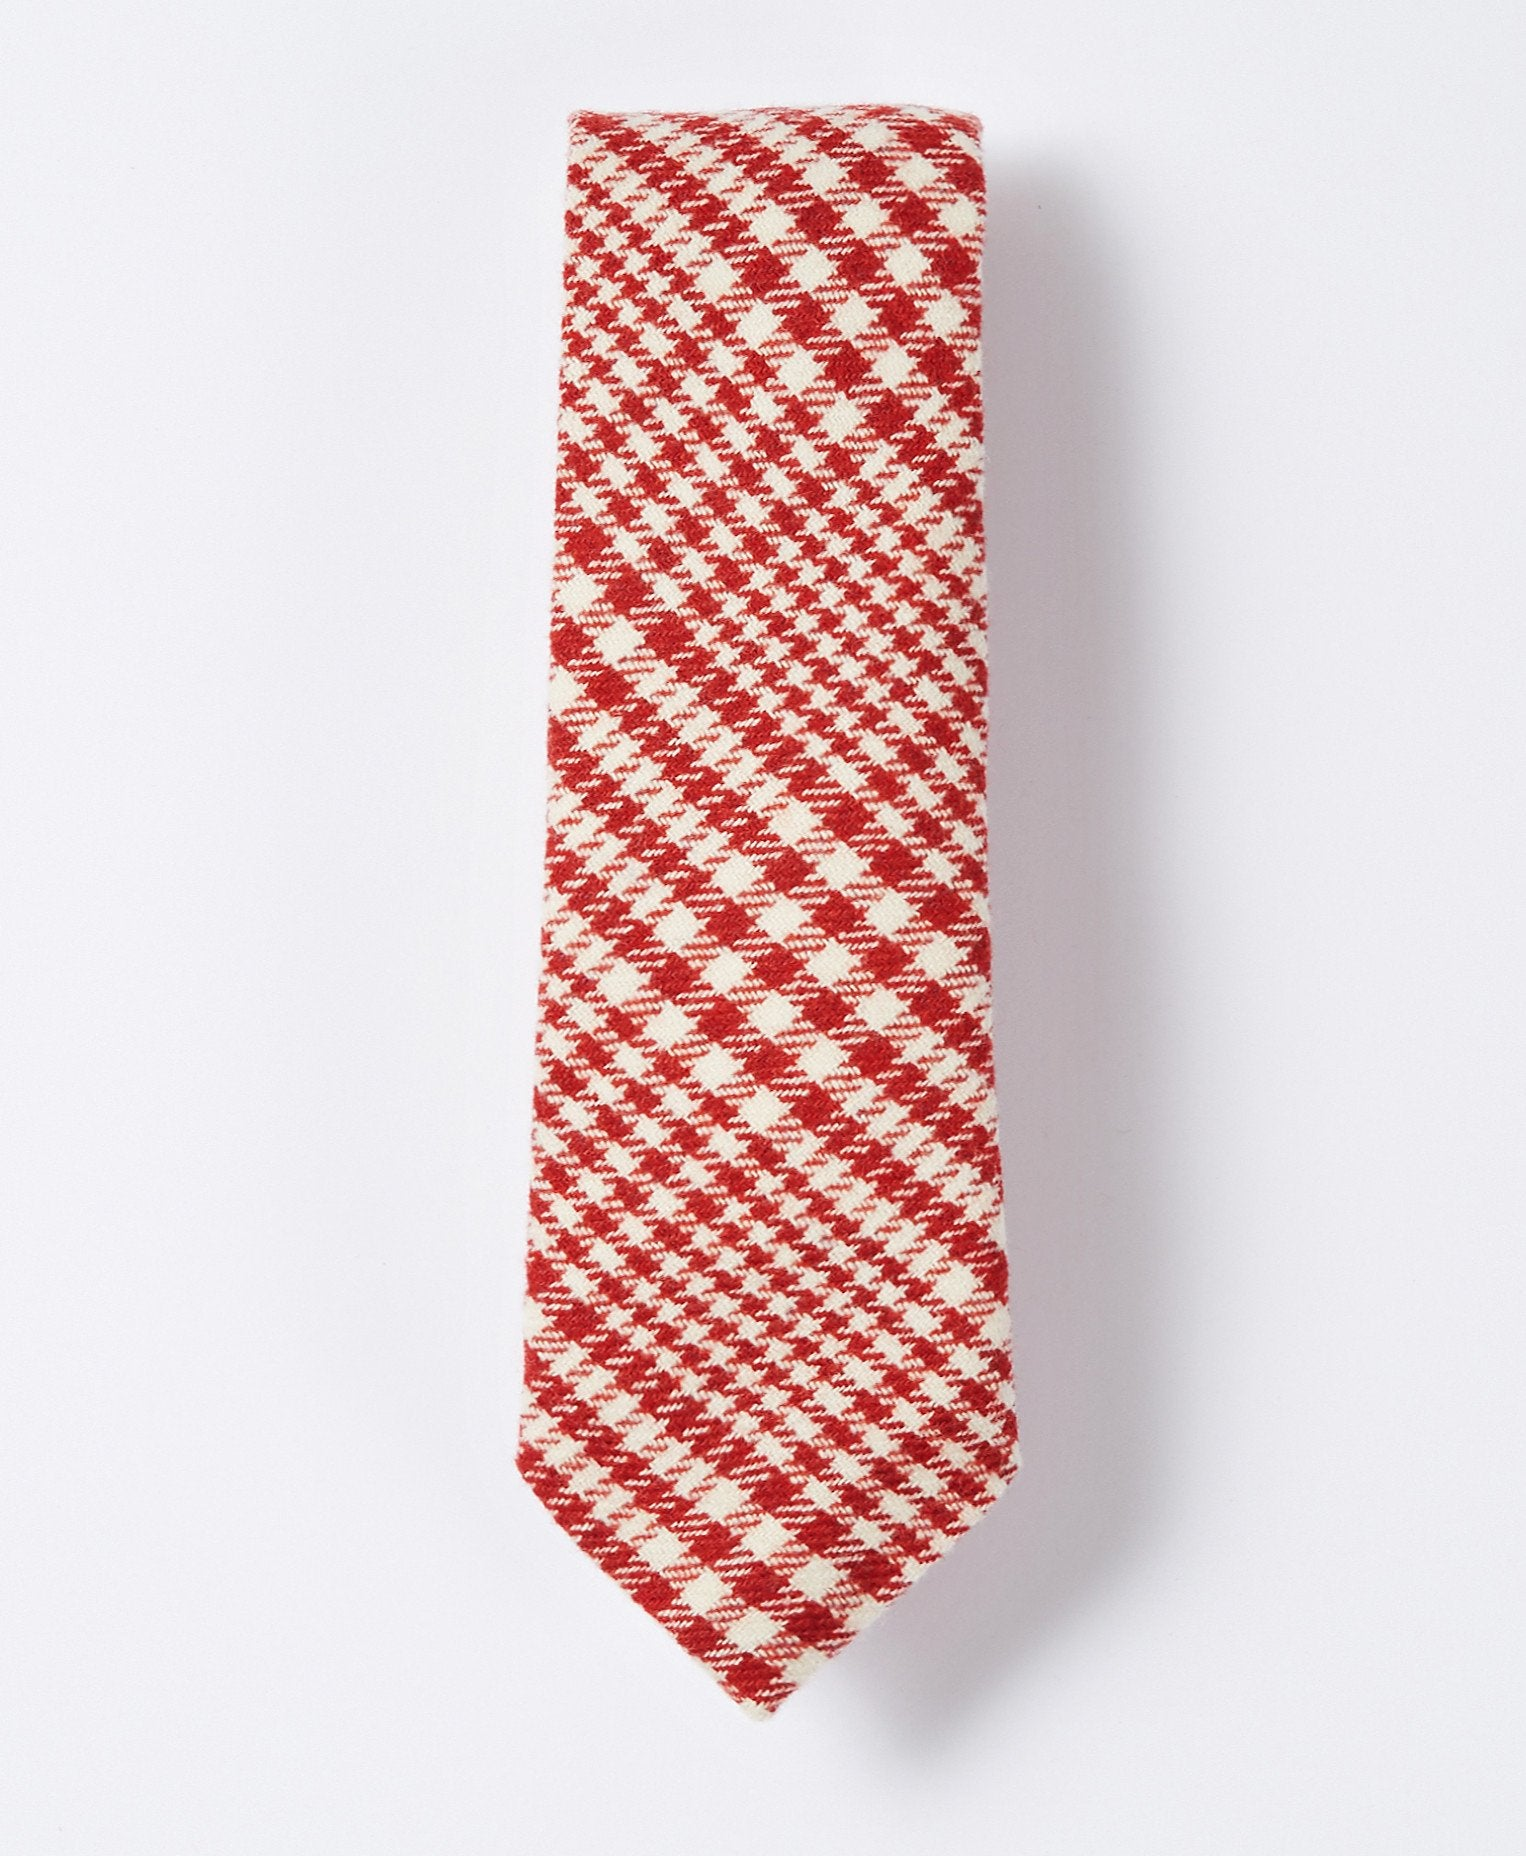 The Wainscott Necktie